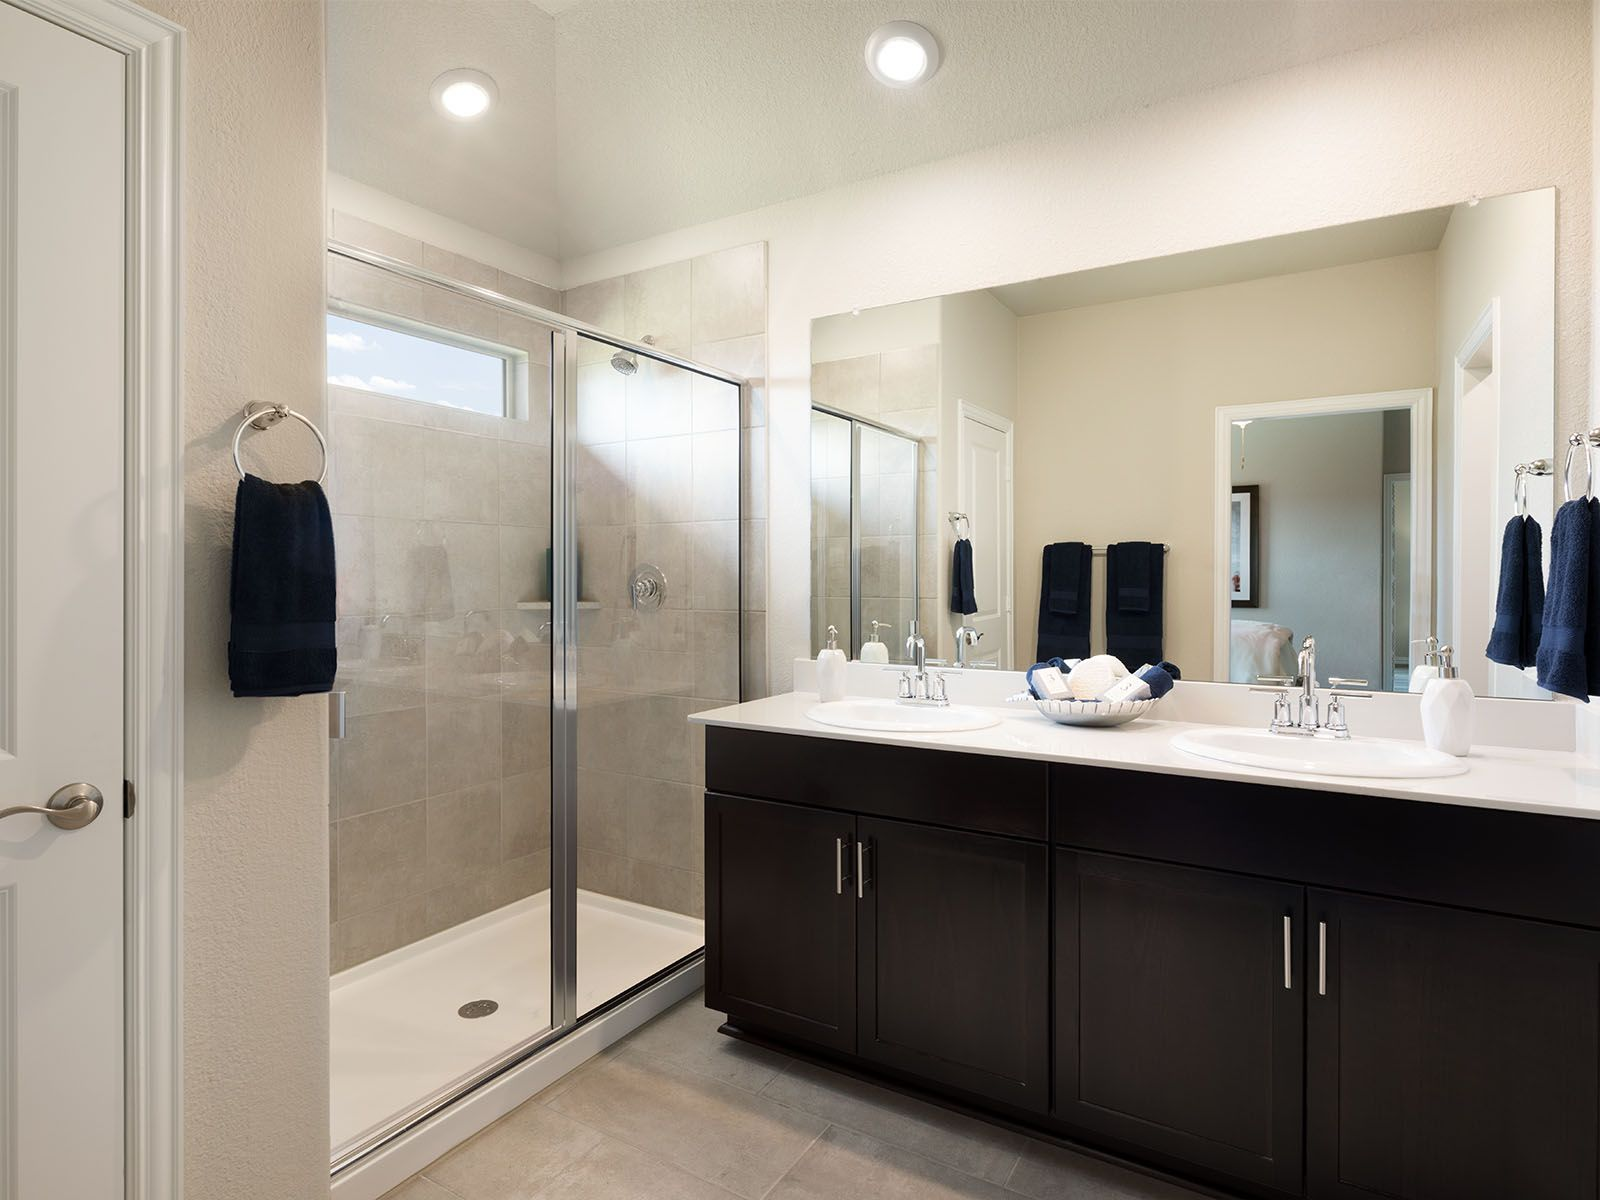 Bathroom featured in The Oleander By Meritage Homes in Dallas, TX